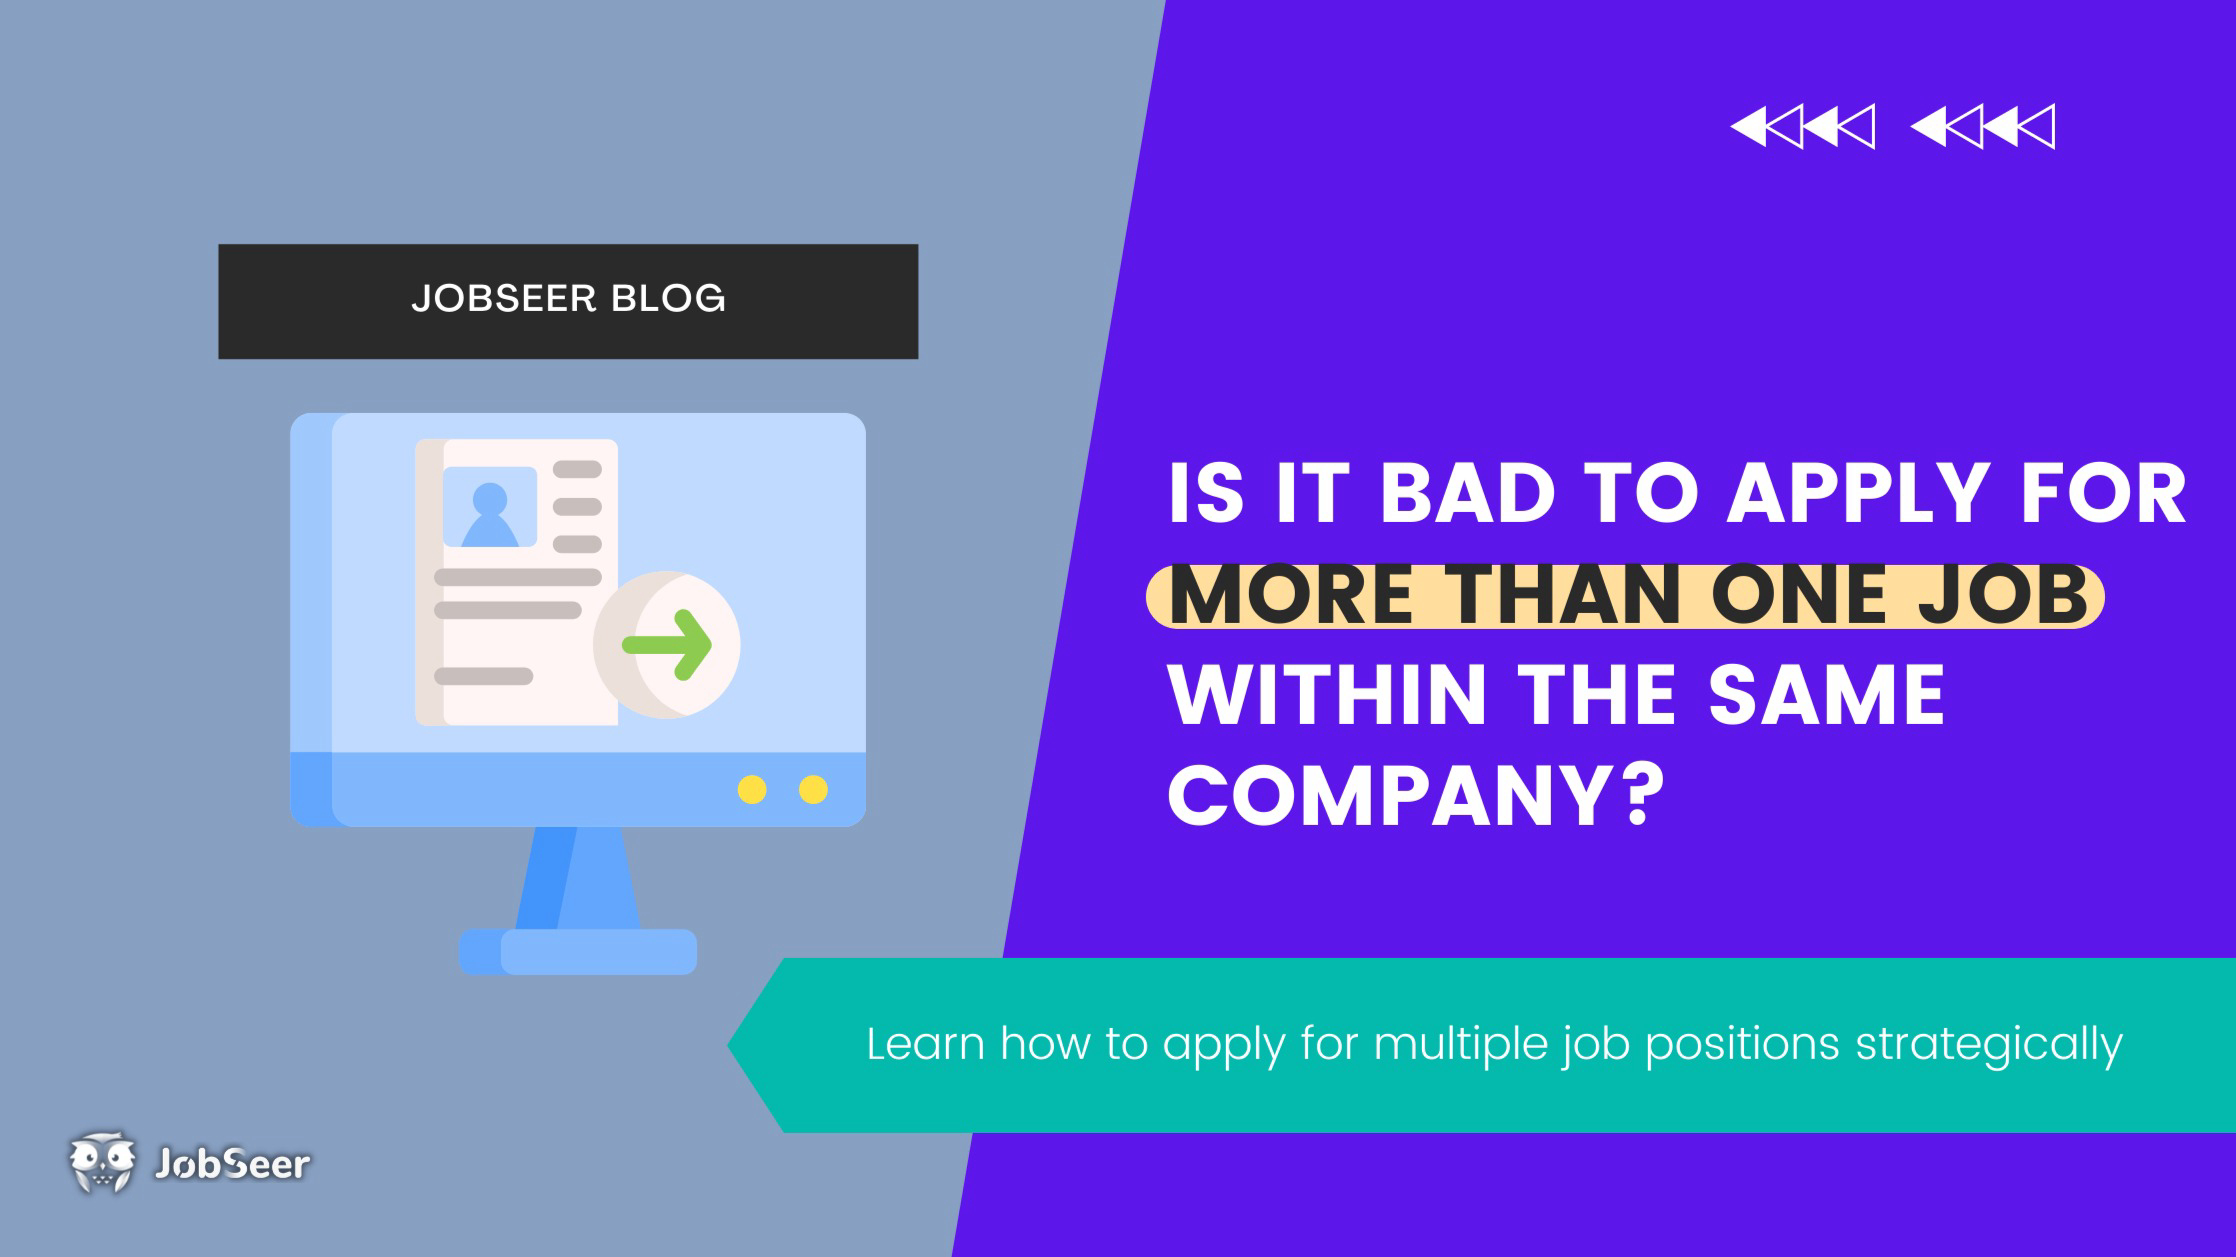 is-it-bad-to-apply-for-more-than-one-job-within-the-same-company